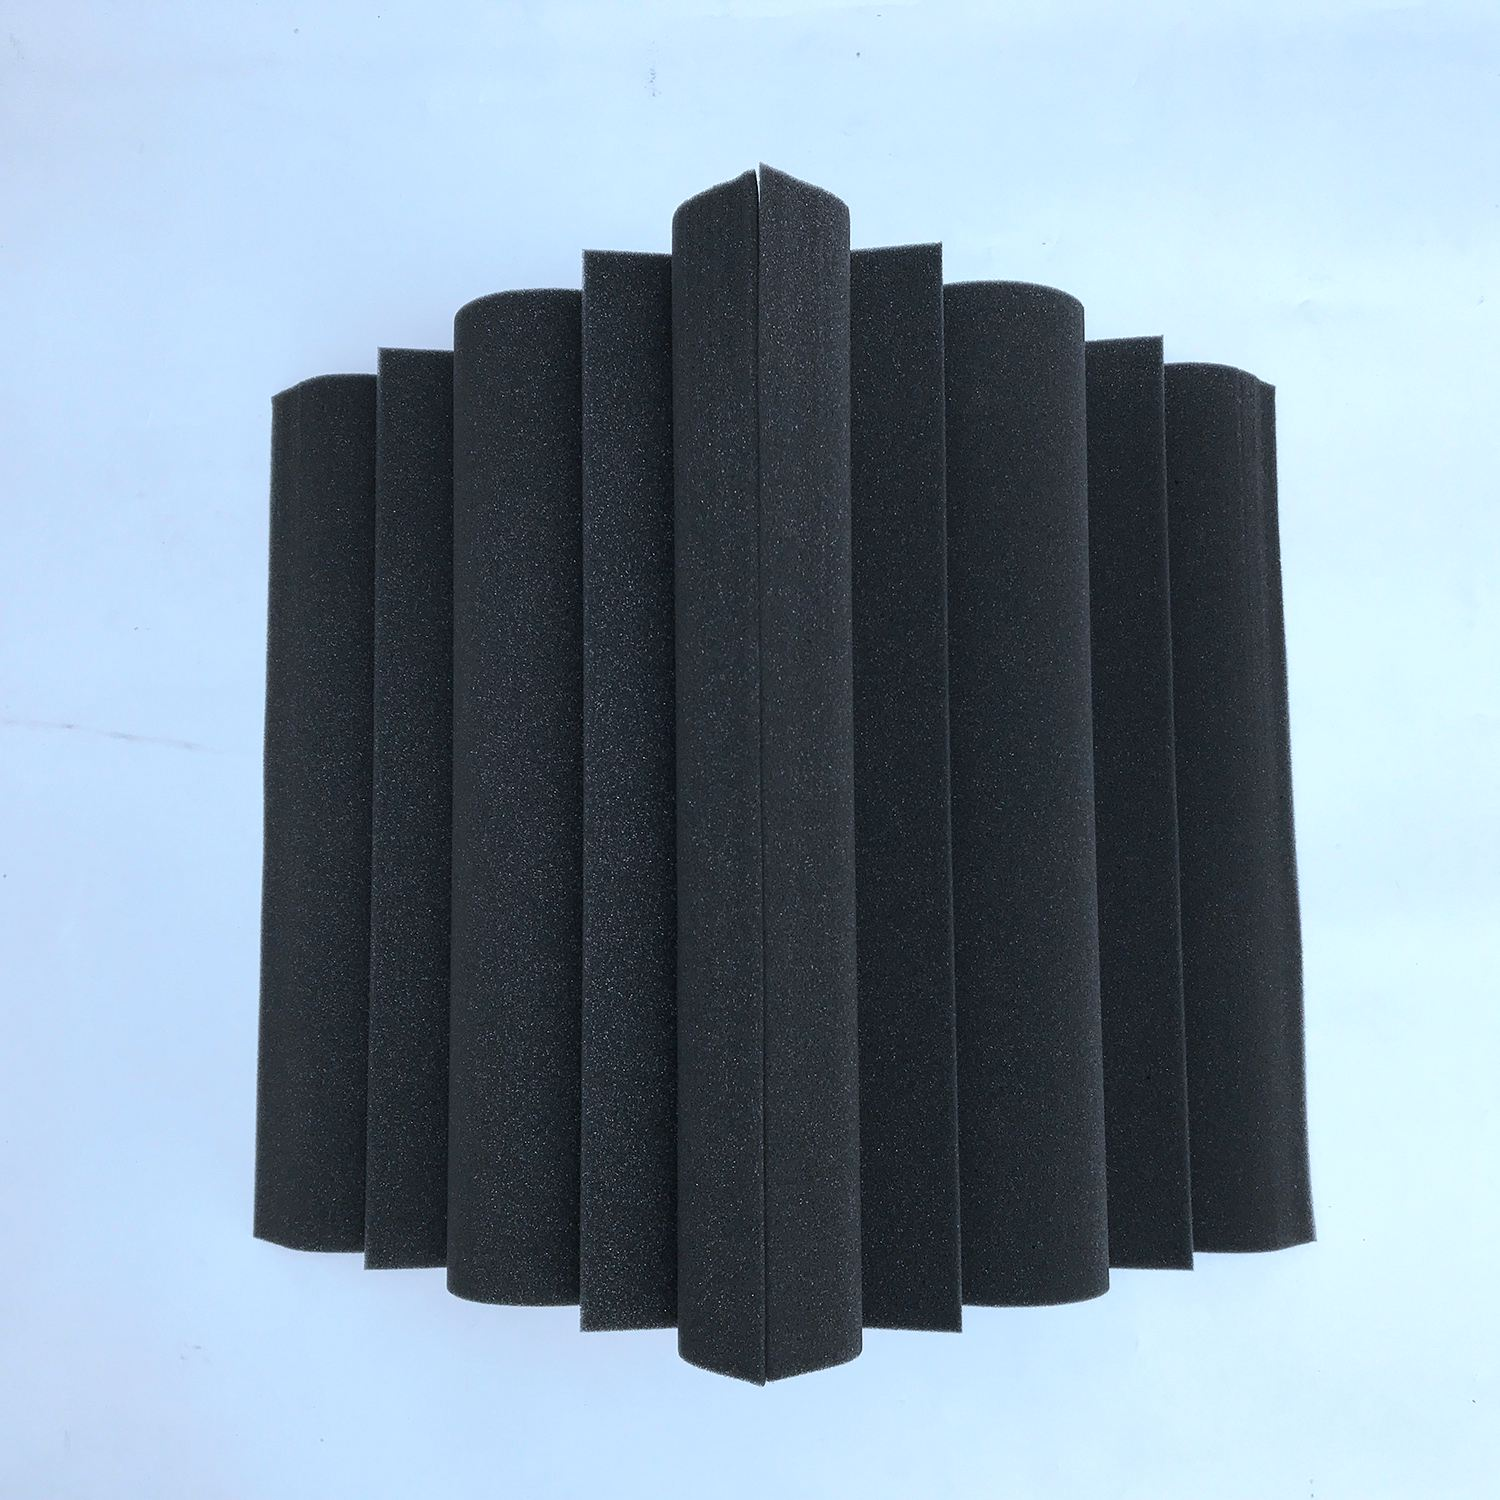 SEWS-4 Pcs Corner Bass Trap Acoustic Panel Studio Sound Absorption Foam 12*12*24cm